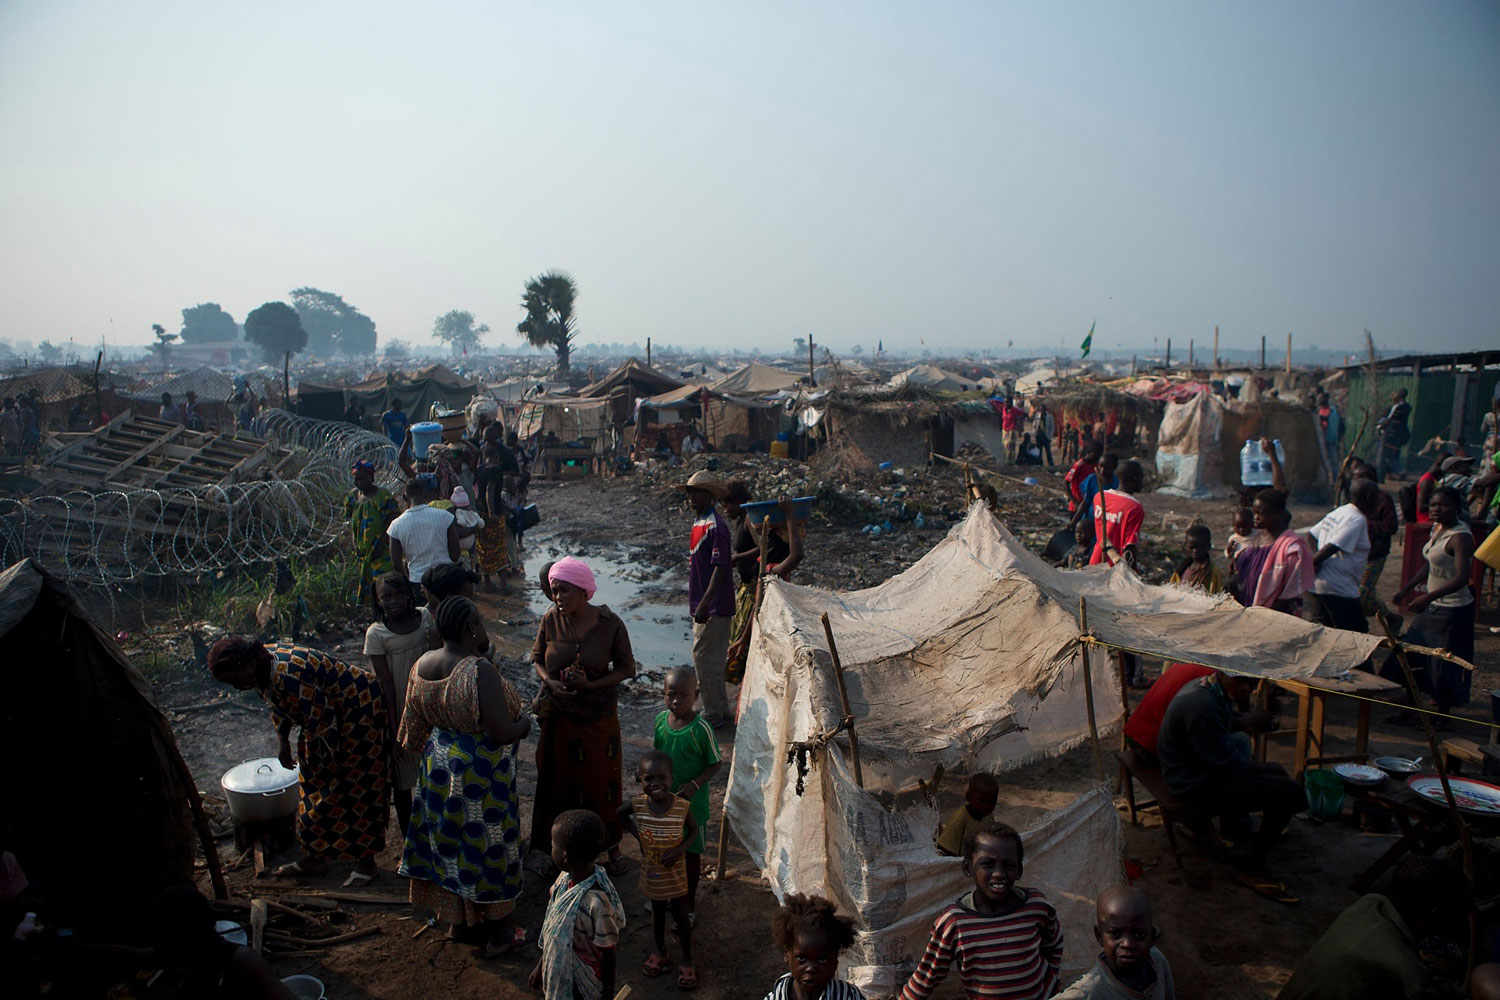 People displaced by violence attempt to create a semblance of daily life in a sprawling camp at M'Poko International Airport in Bangui on Jan. 2, 2014.